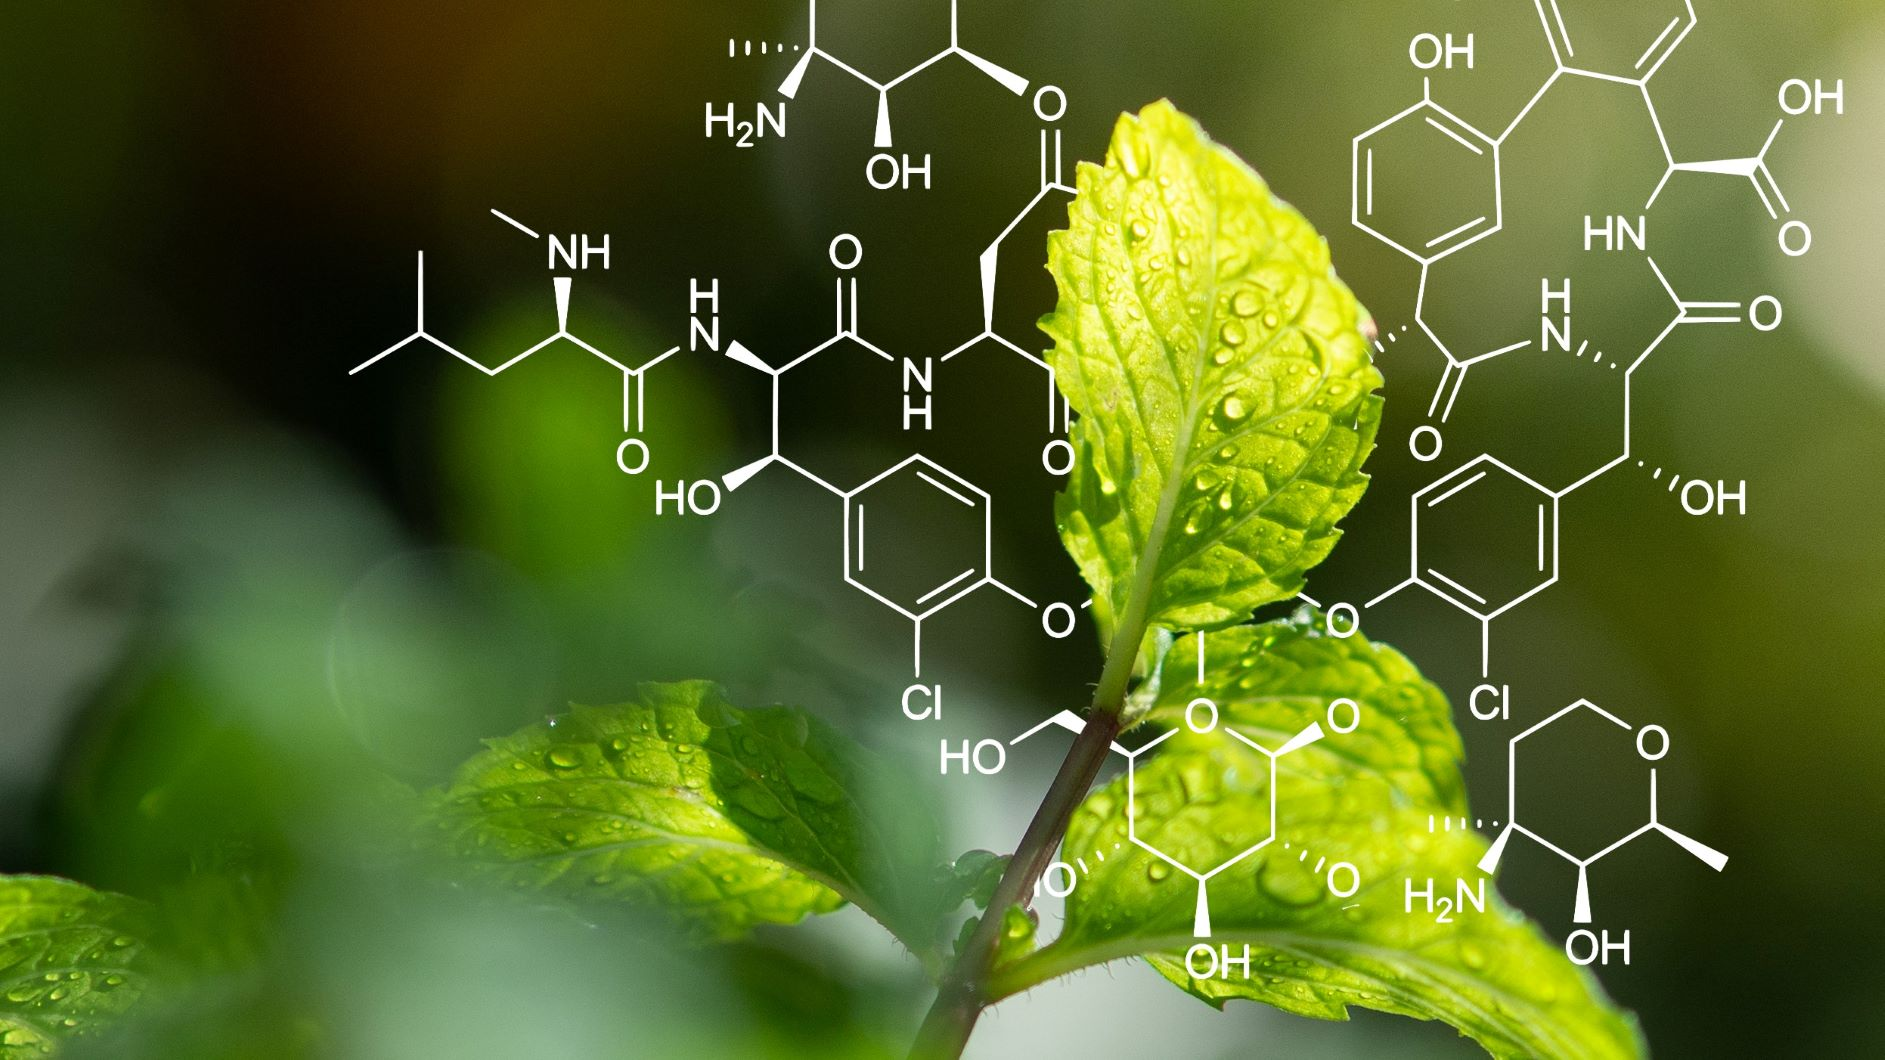 CDD Vault boosts moa's in vivo herbicide discovery